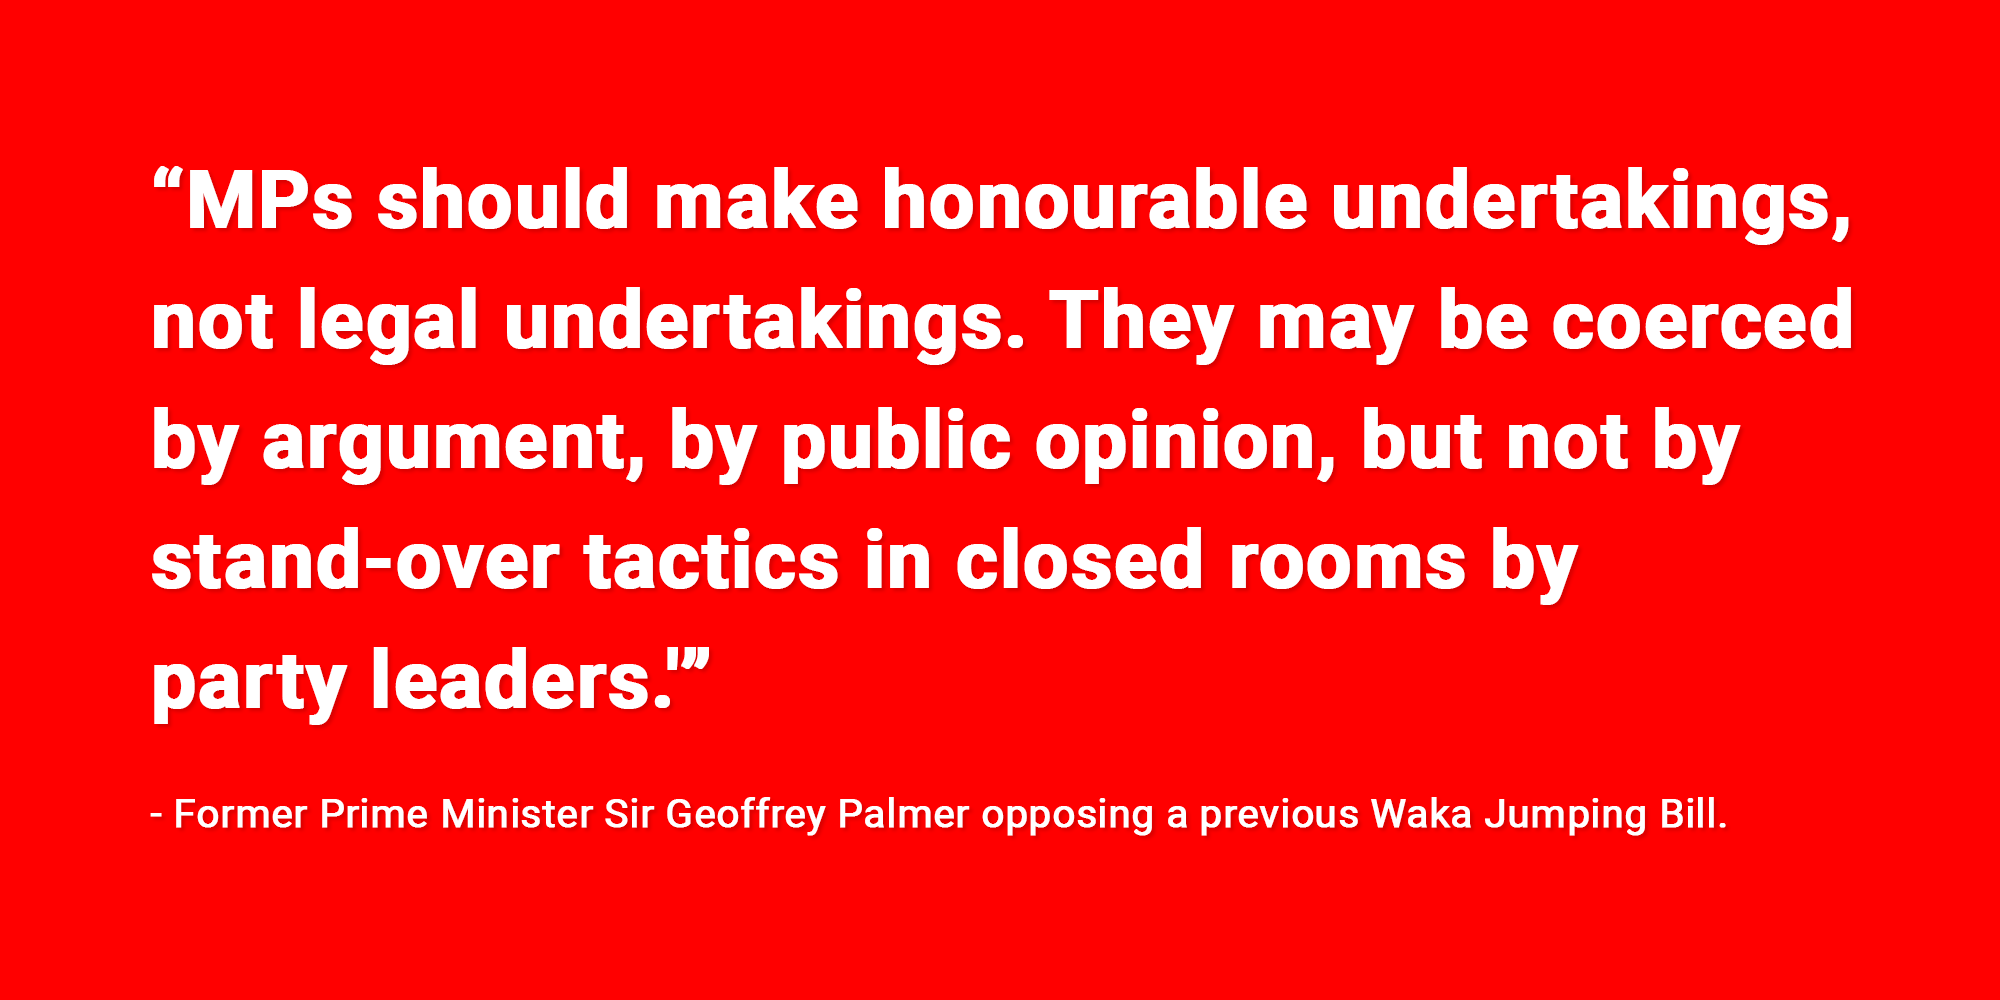 Sir Geoffrey Palmer quote 1.png